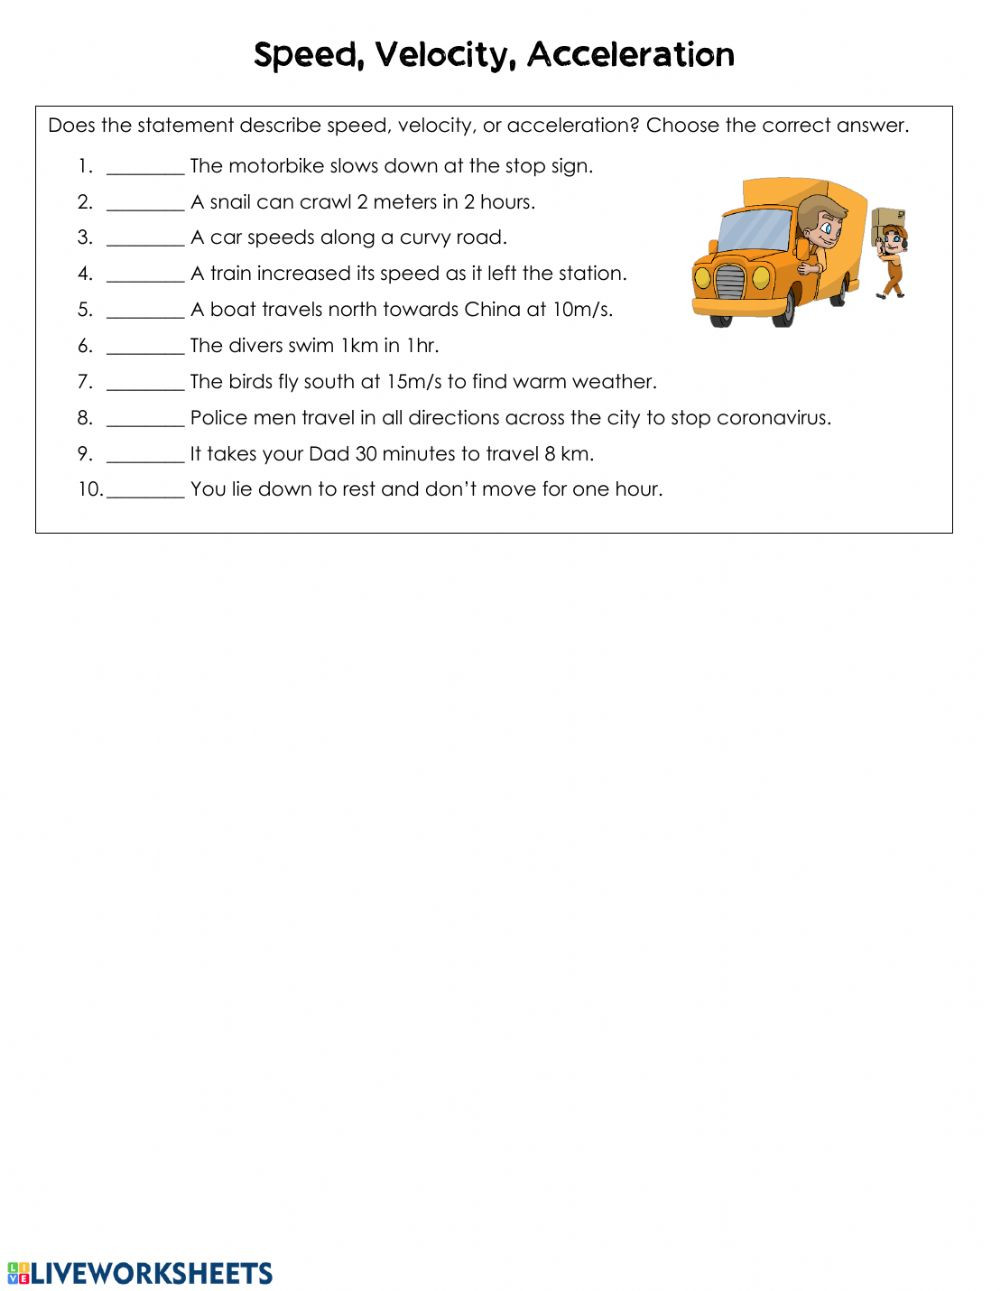 Speed Velocity and Acceleration Worksheet